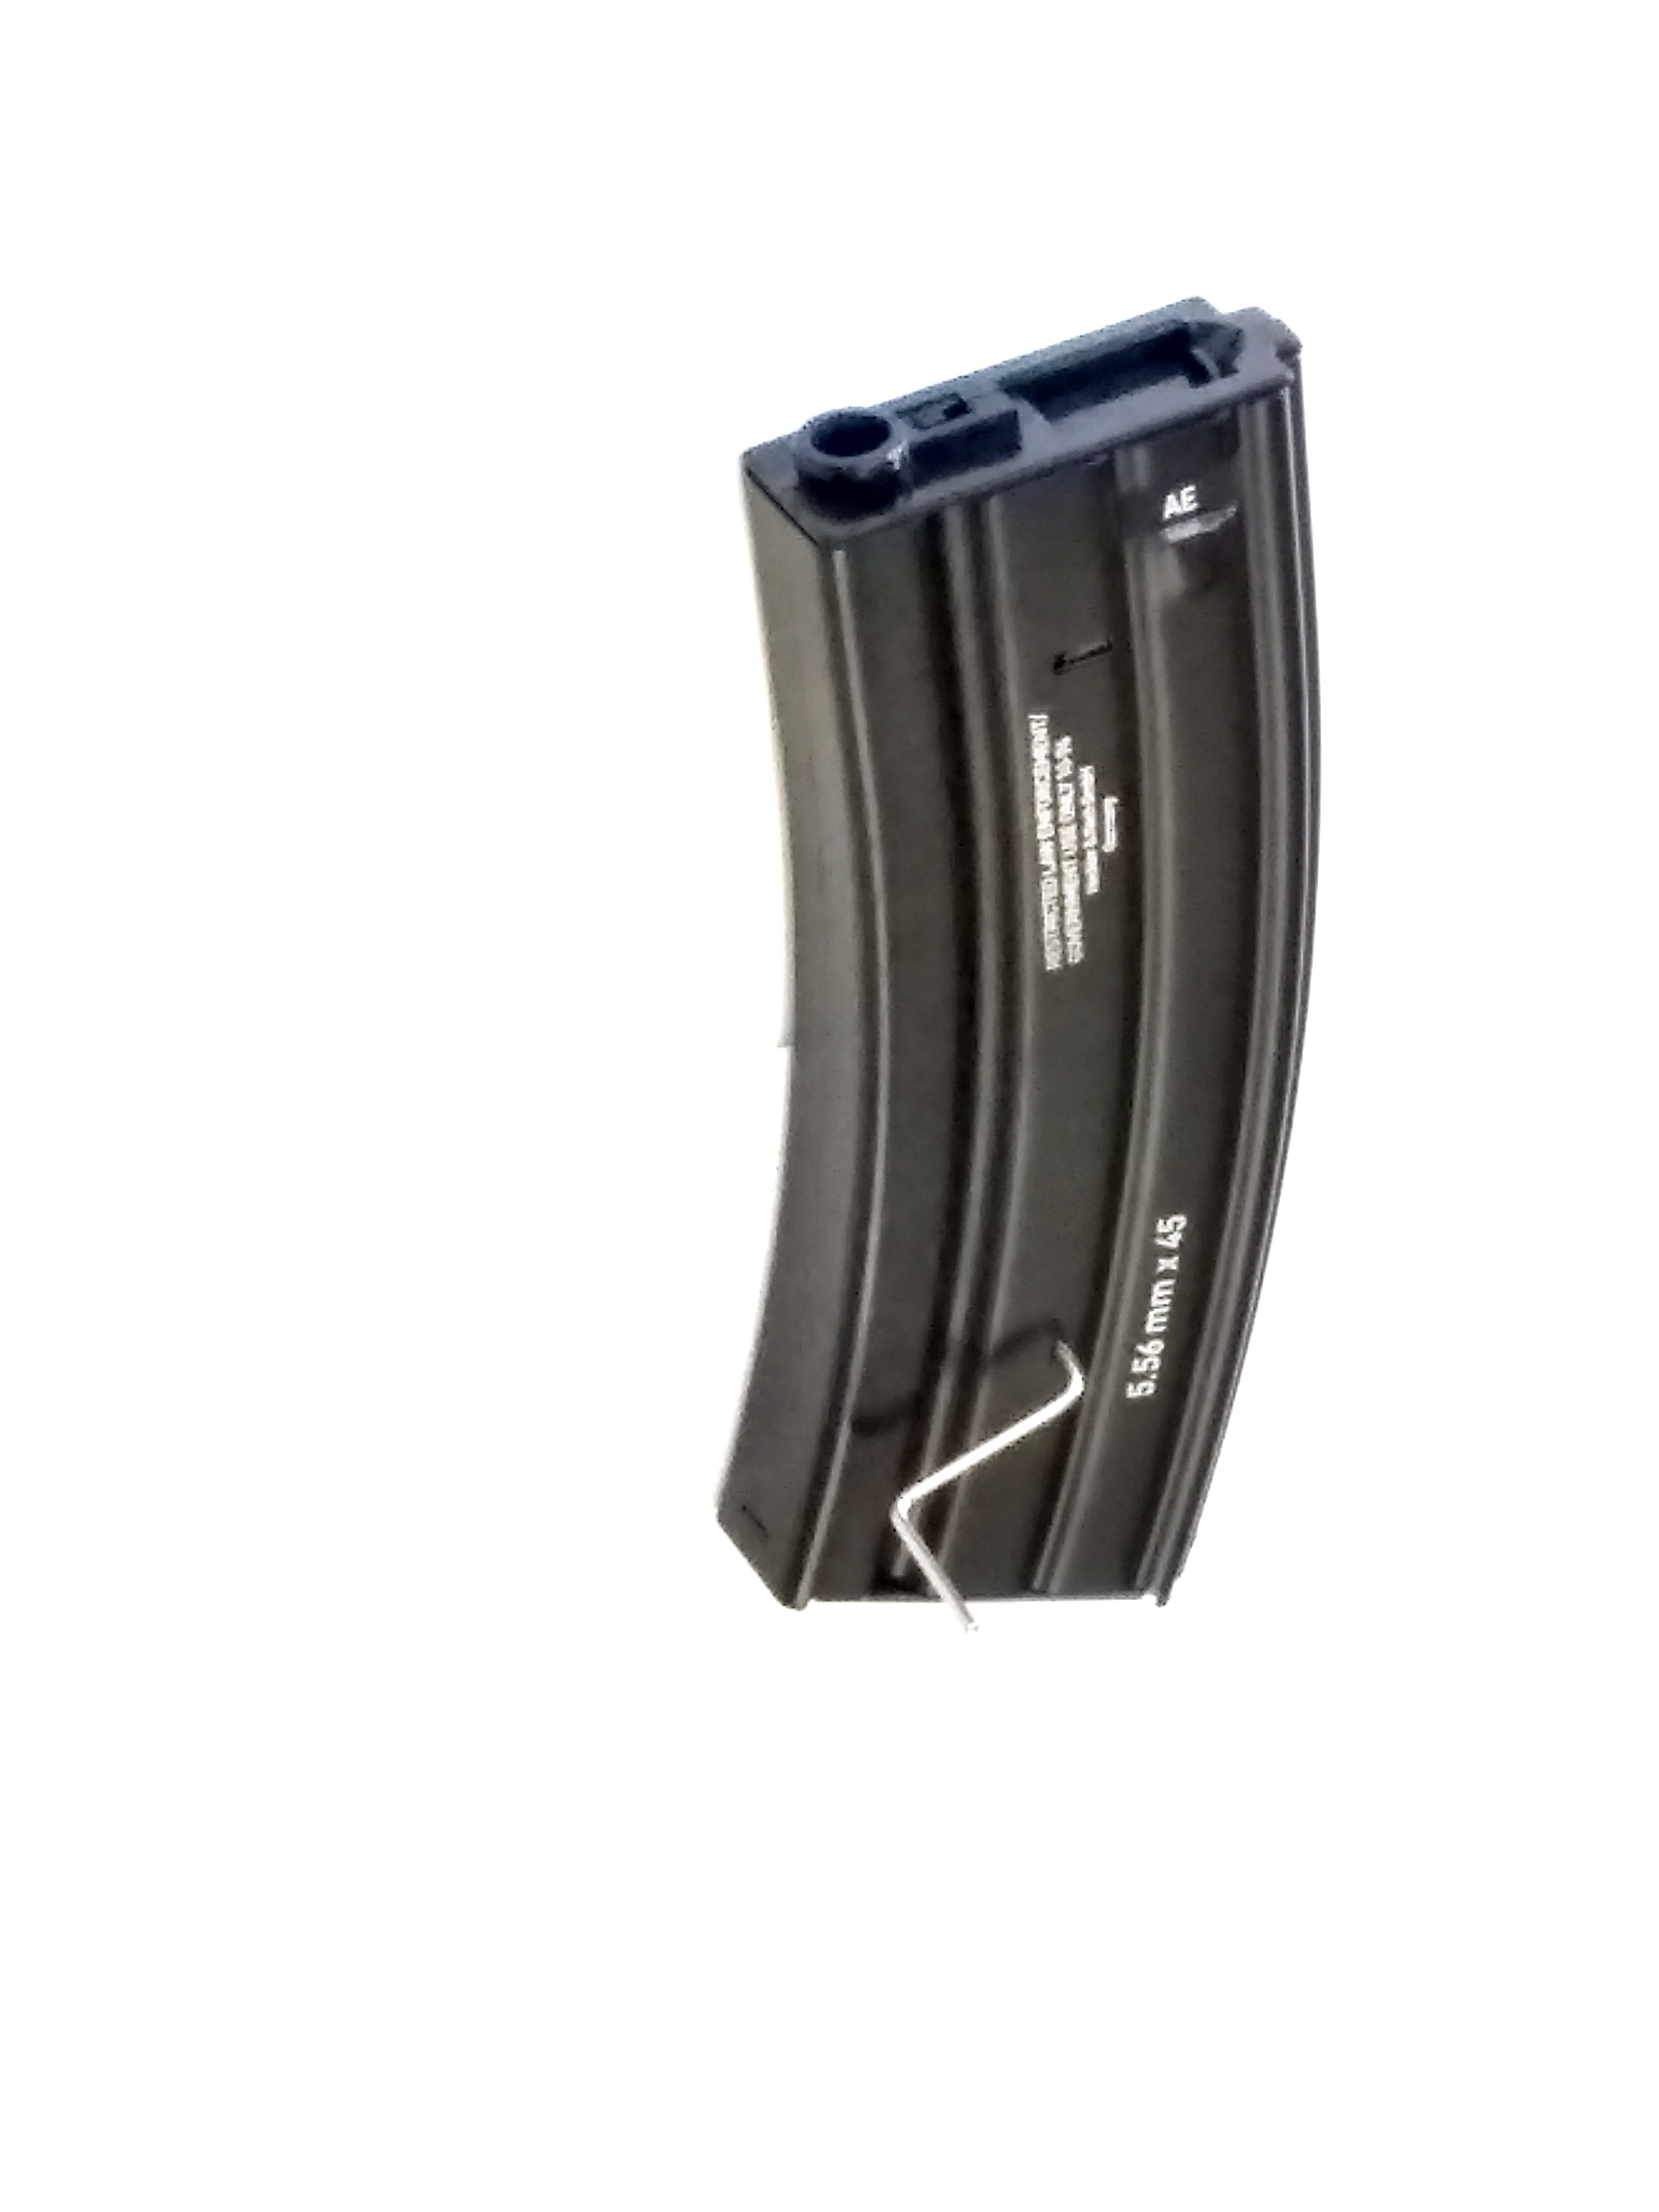 Umarex 320rd H&K 416 Hi-Capacity Magazine for M4/M16 Series